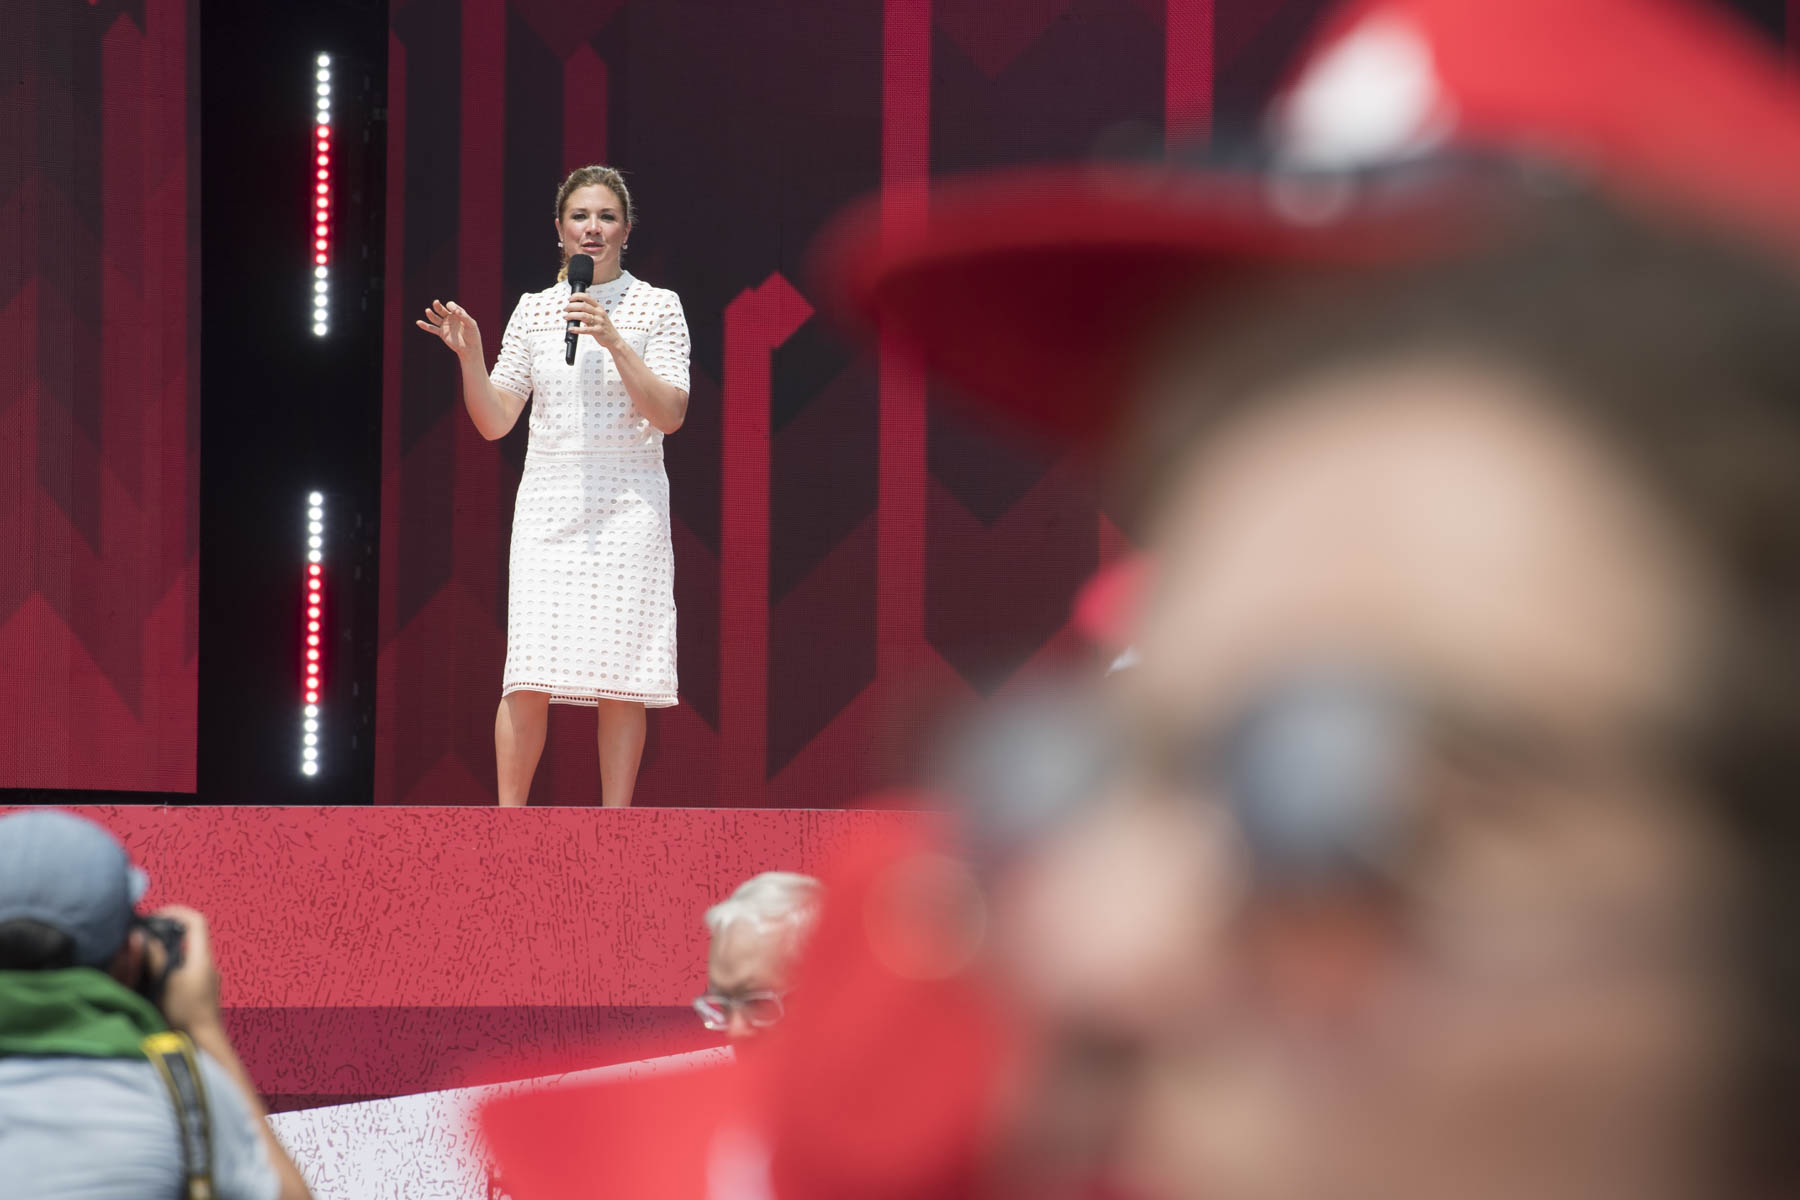 Sophie Grégoire Trudeau addressed Canadians and presented her husband the Right Honourable Justin Trudeau, Prime Minister of Canada, live from Leamington Ontario.